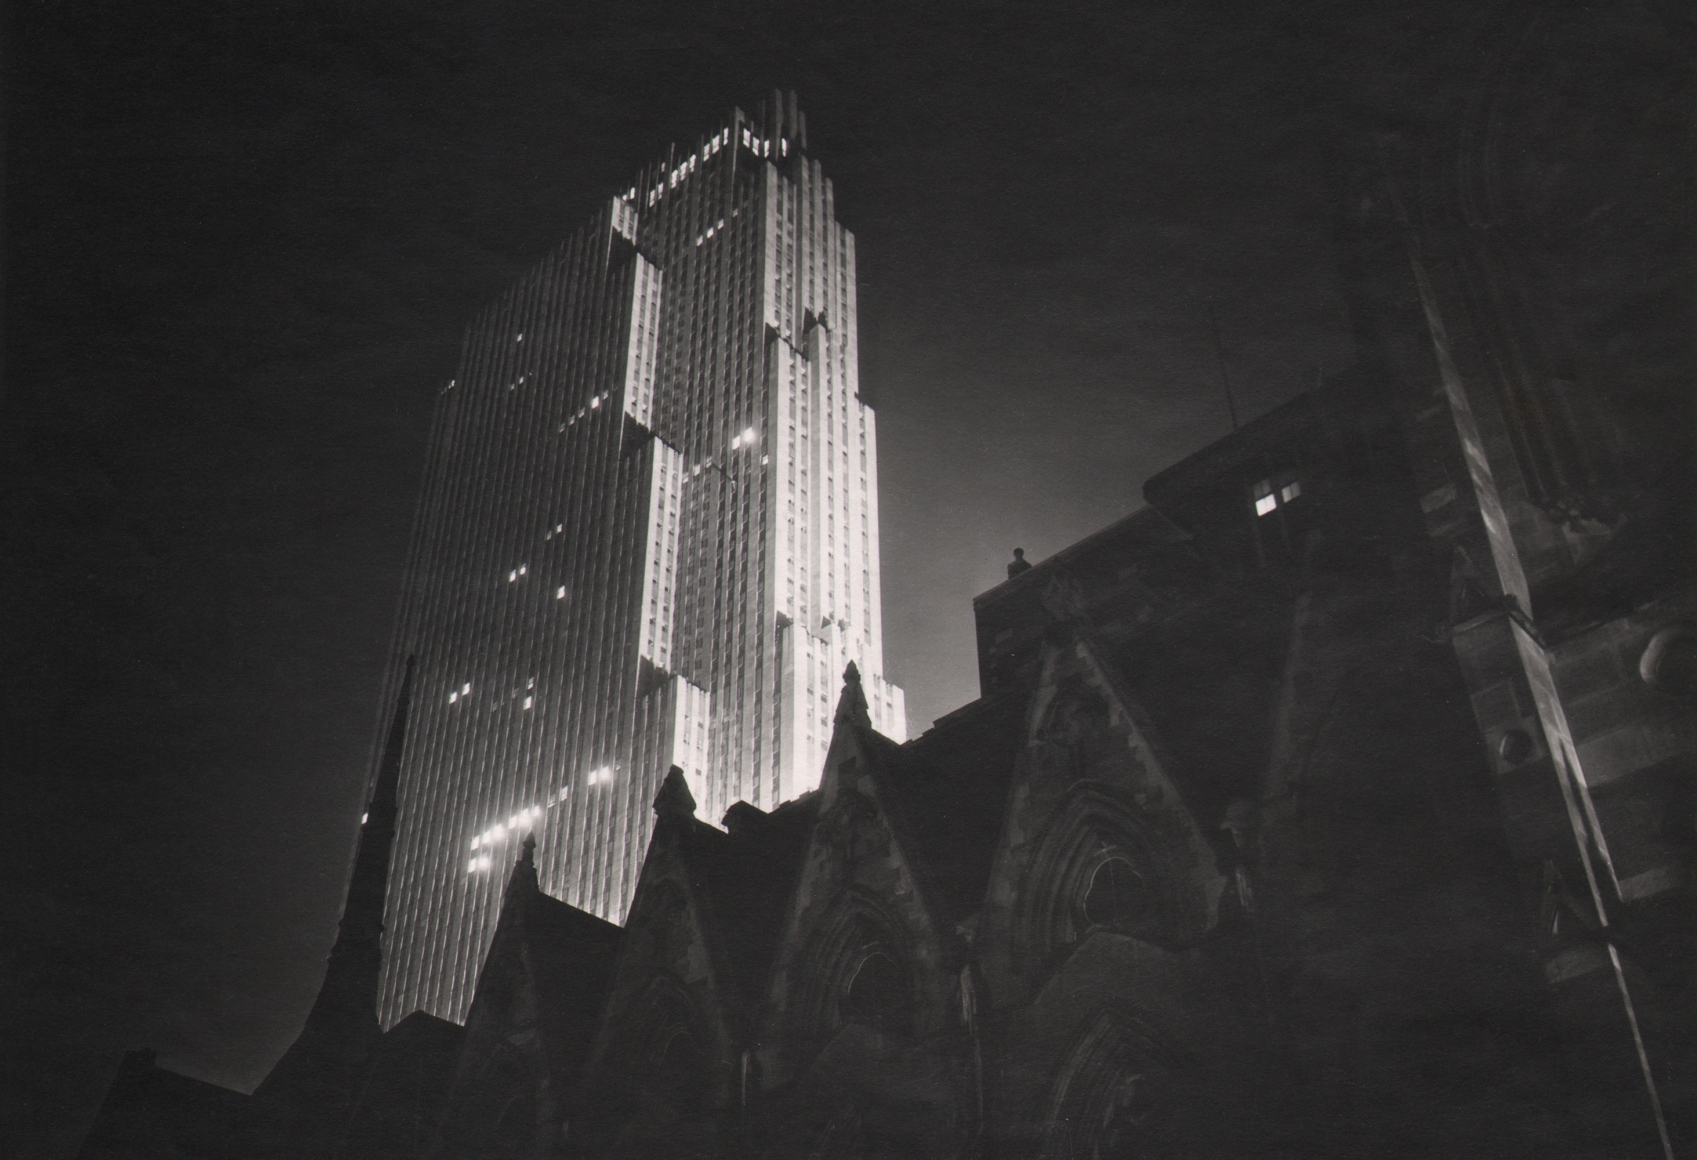 Paul J. Woolf, RCA Building at Night, c. 1936. Silhouetted cathedral in the foreground against the tall RCA Building rising up on the center left of the frame.